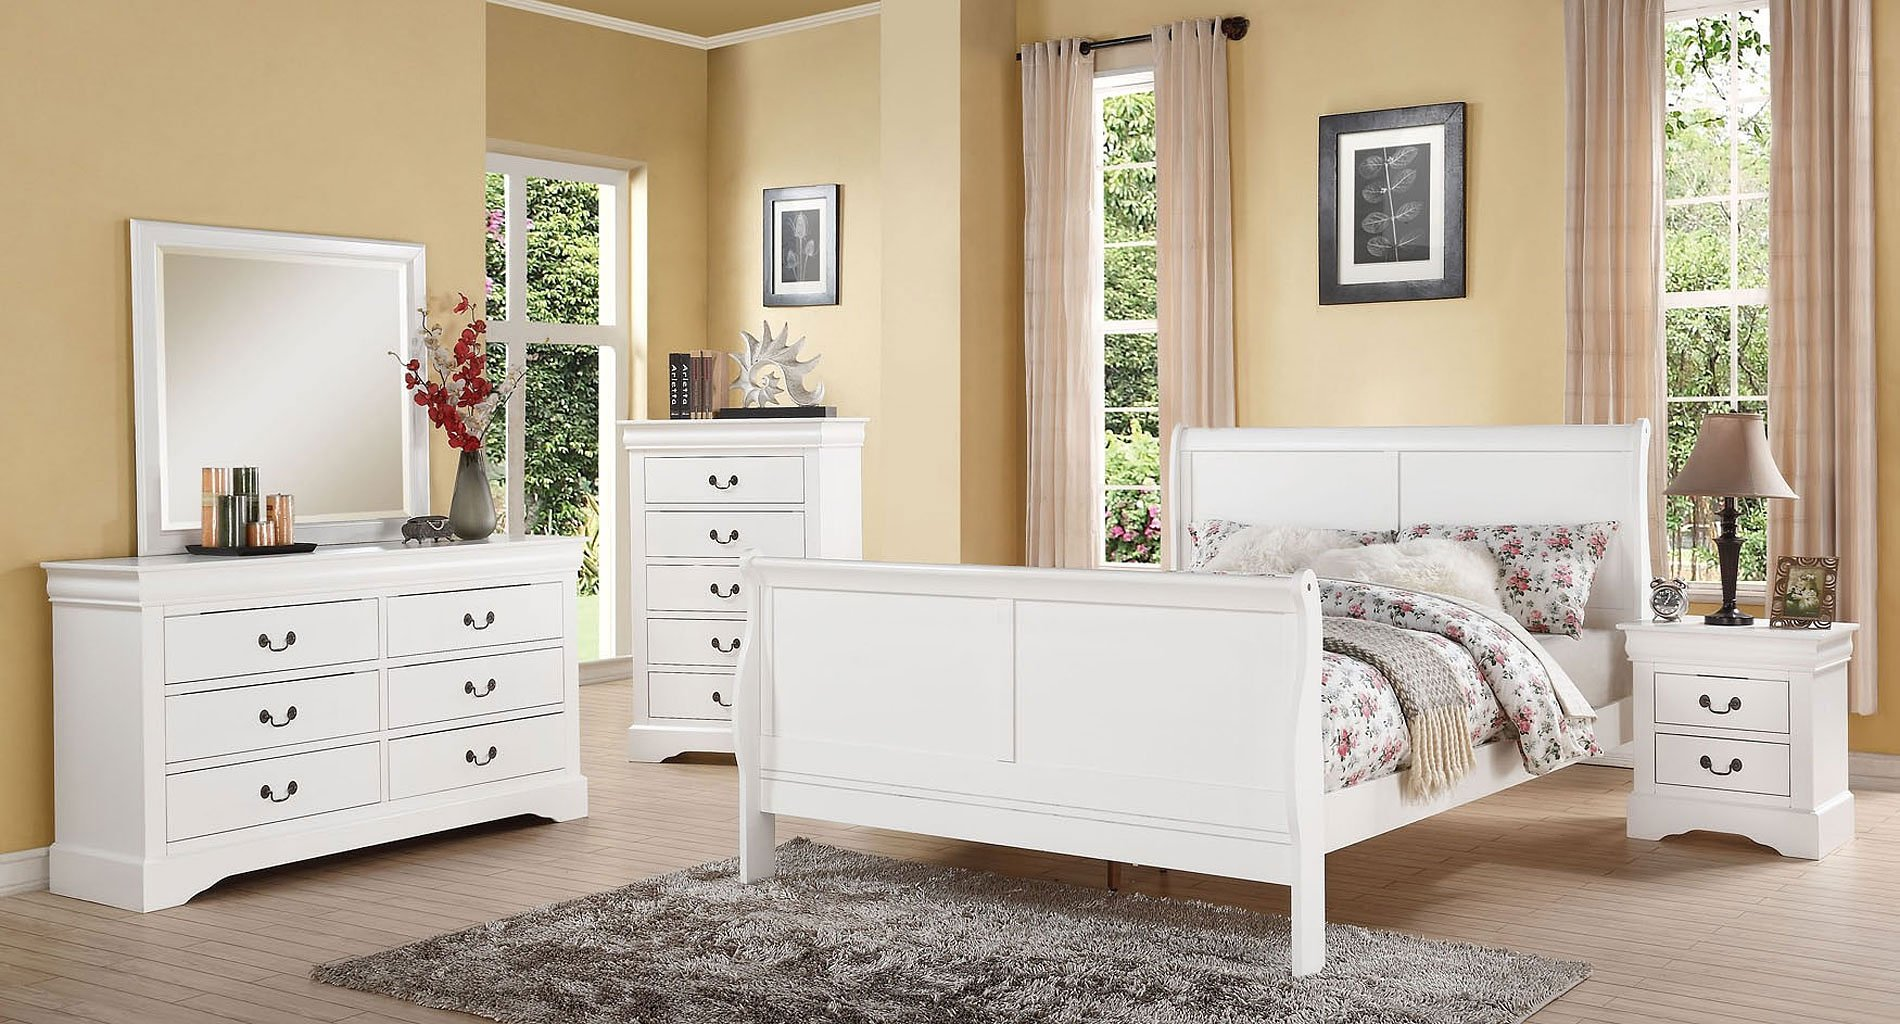 Louis Philippe III Youth Bedroom Set (White)